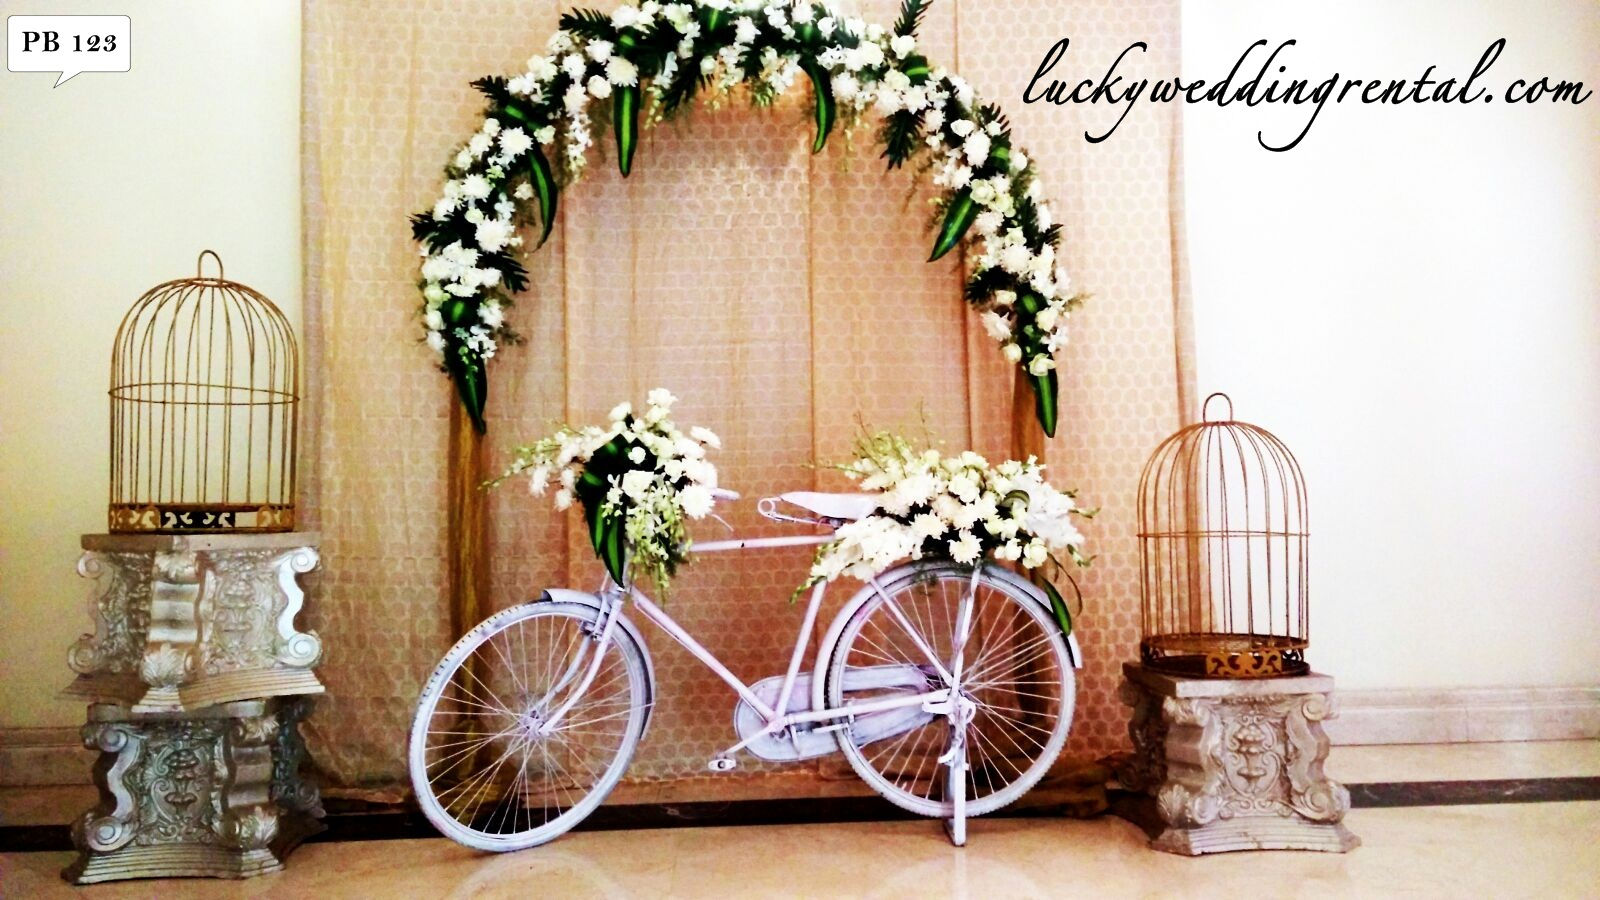 photo booth decorations on rent lucky wedding rental. Black Bedroom Furniture Sets. Home Design Ideas